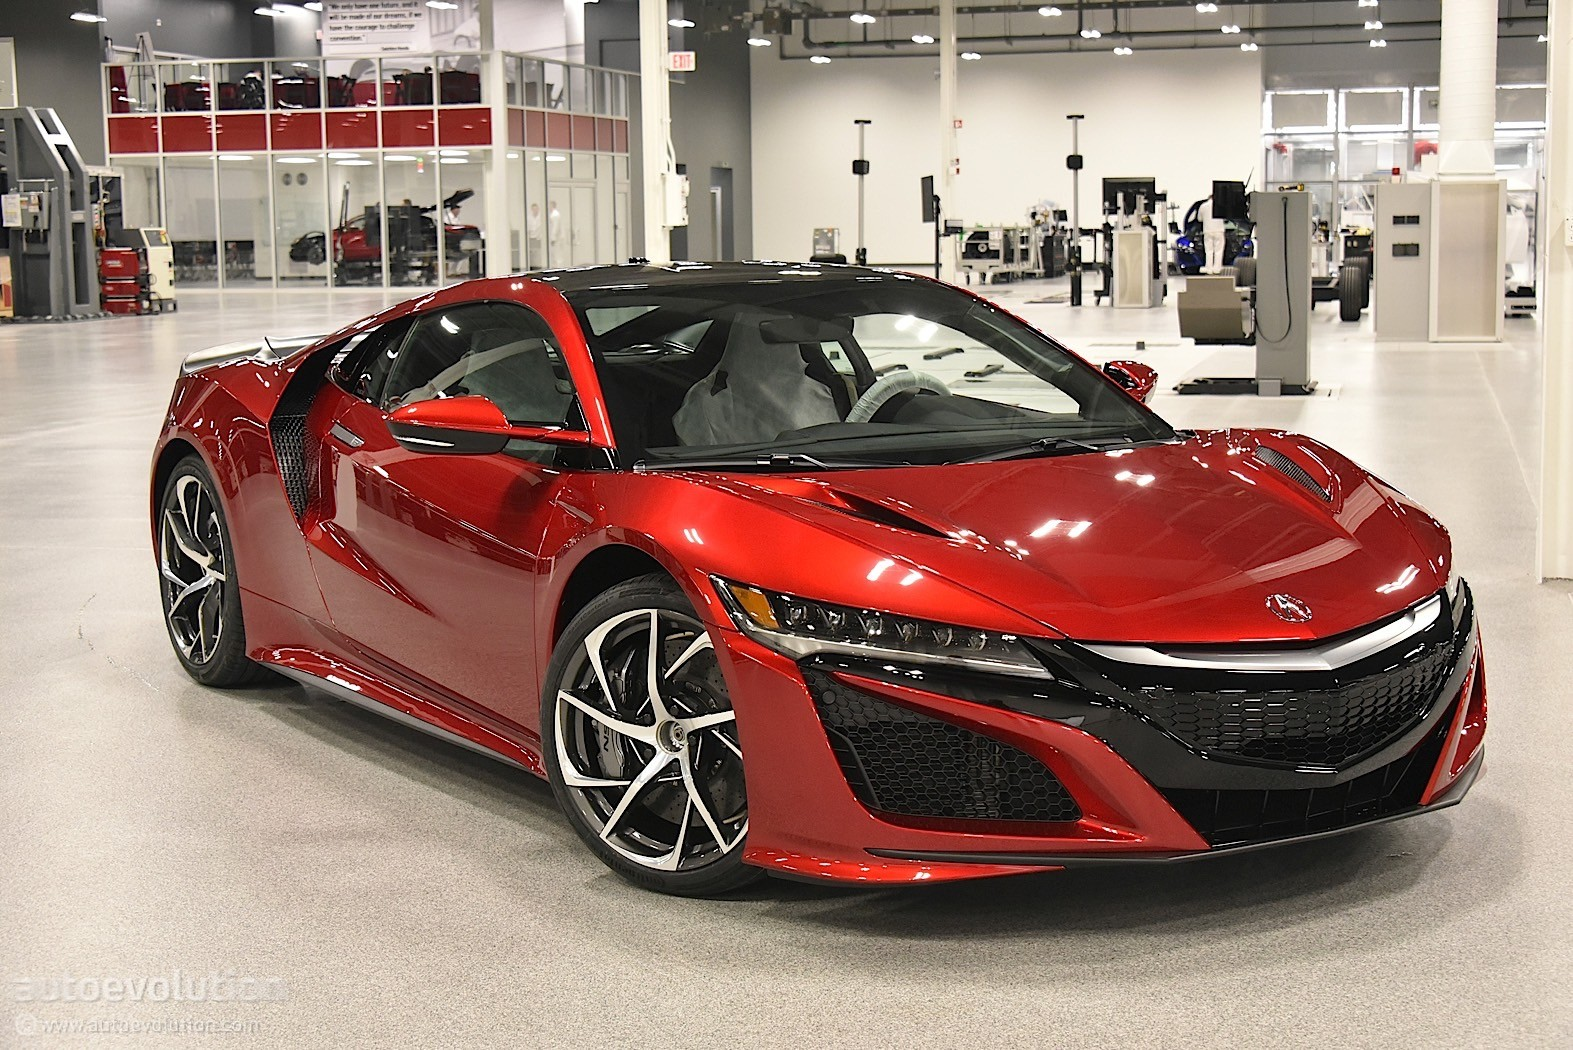 2017 Acura Nsx Gets Widebody Kit And Roof Box In Brutal Rendering Autoevolution